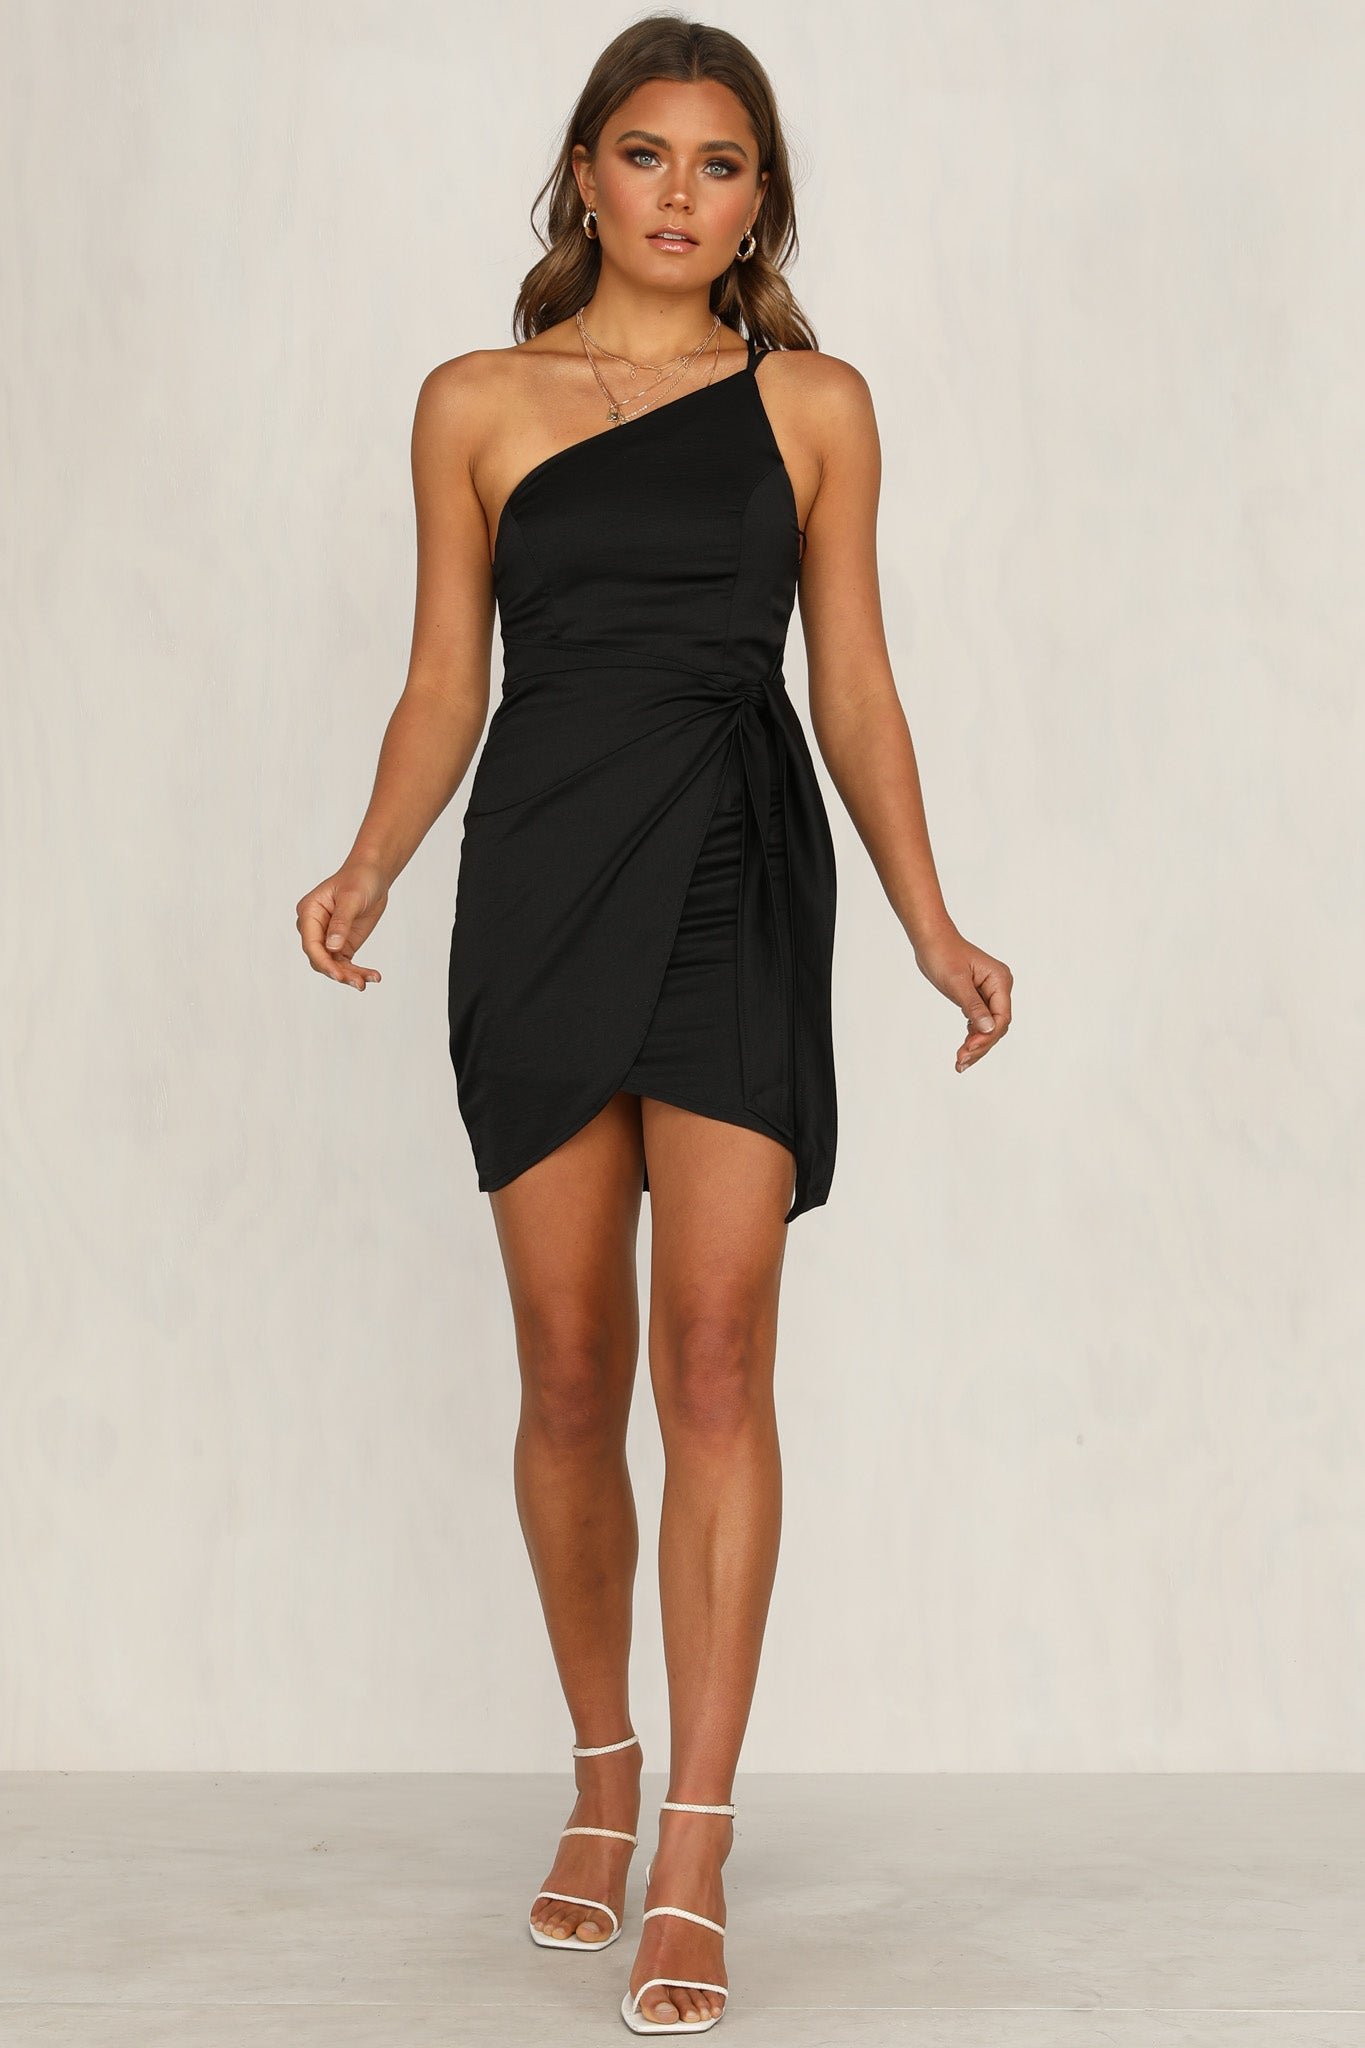 Make You Miss Me Dress (Black)